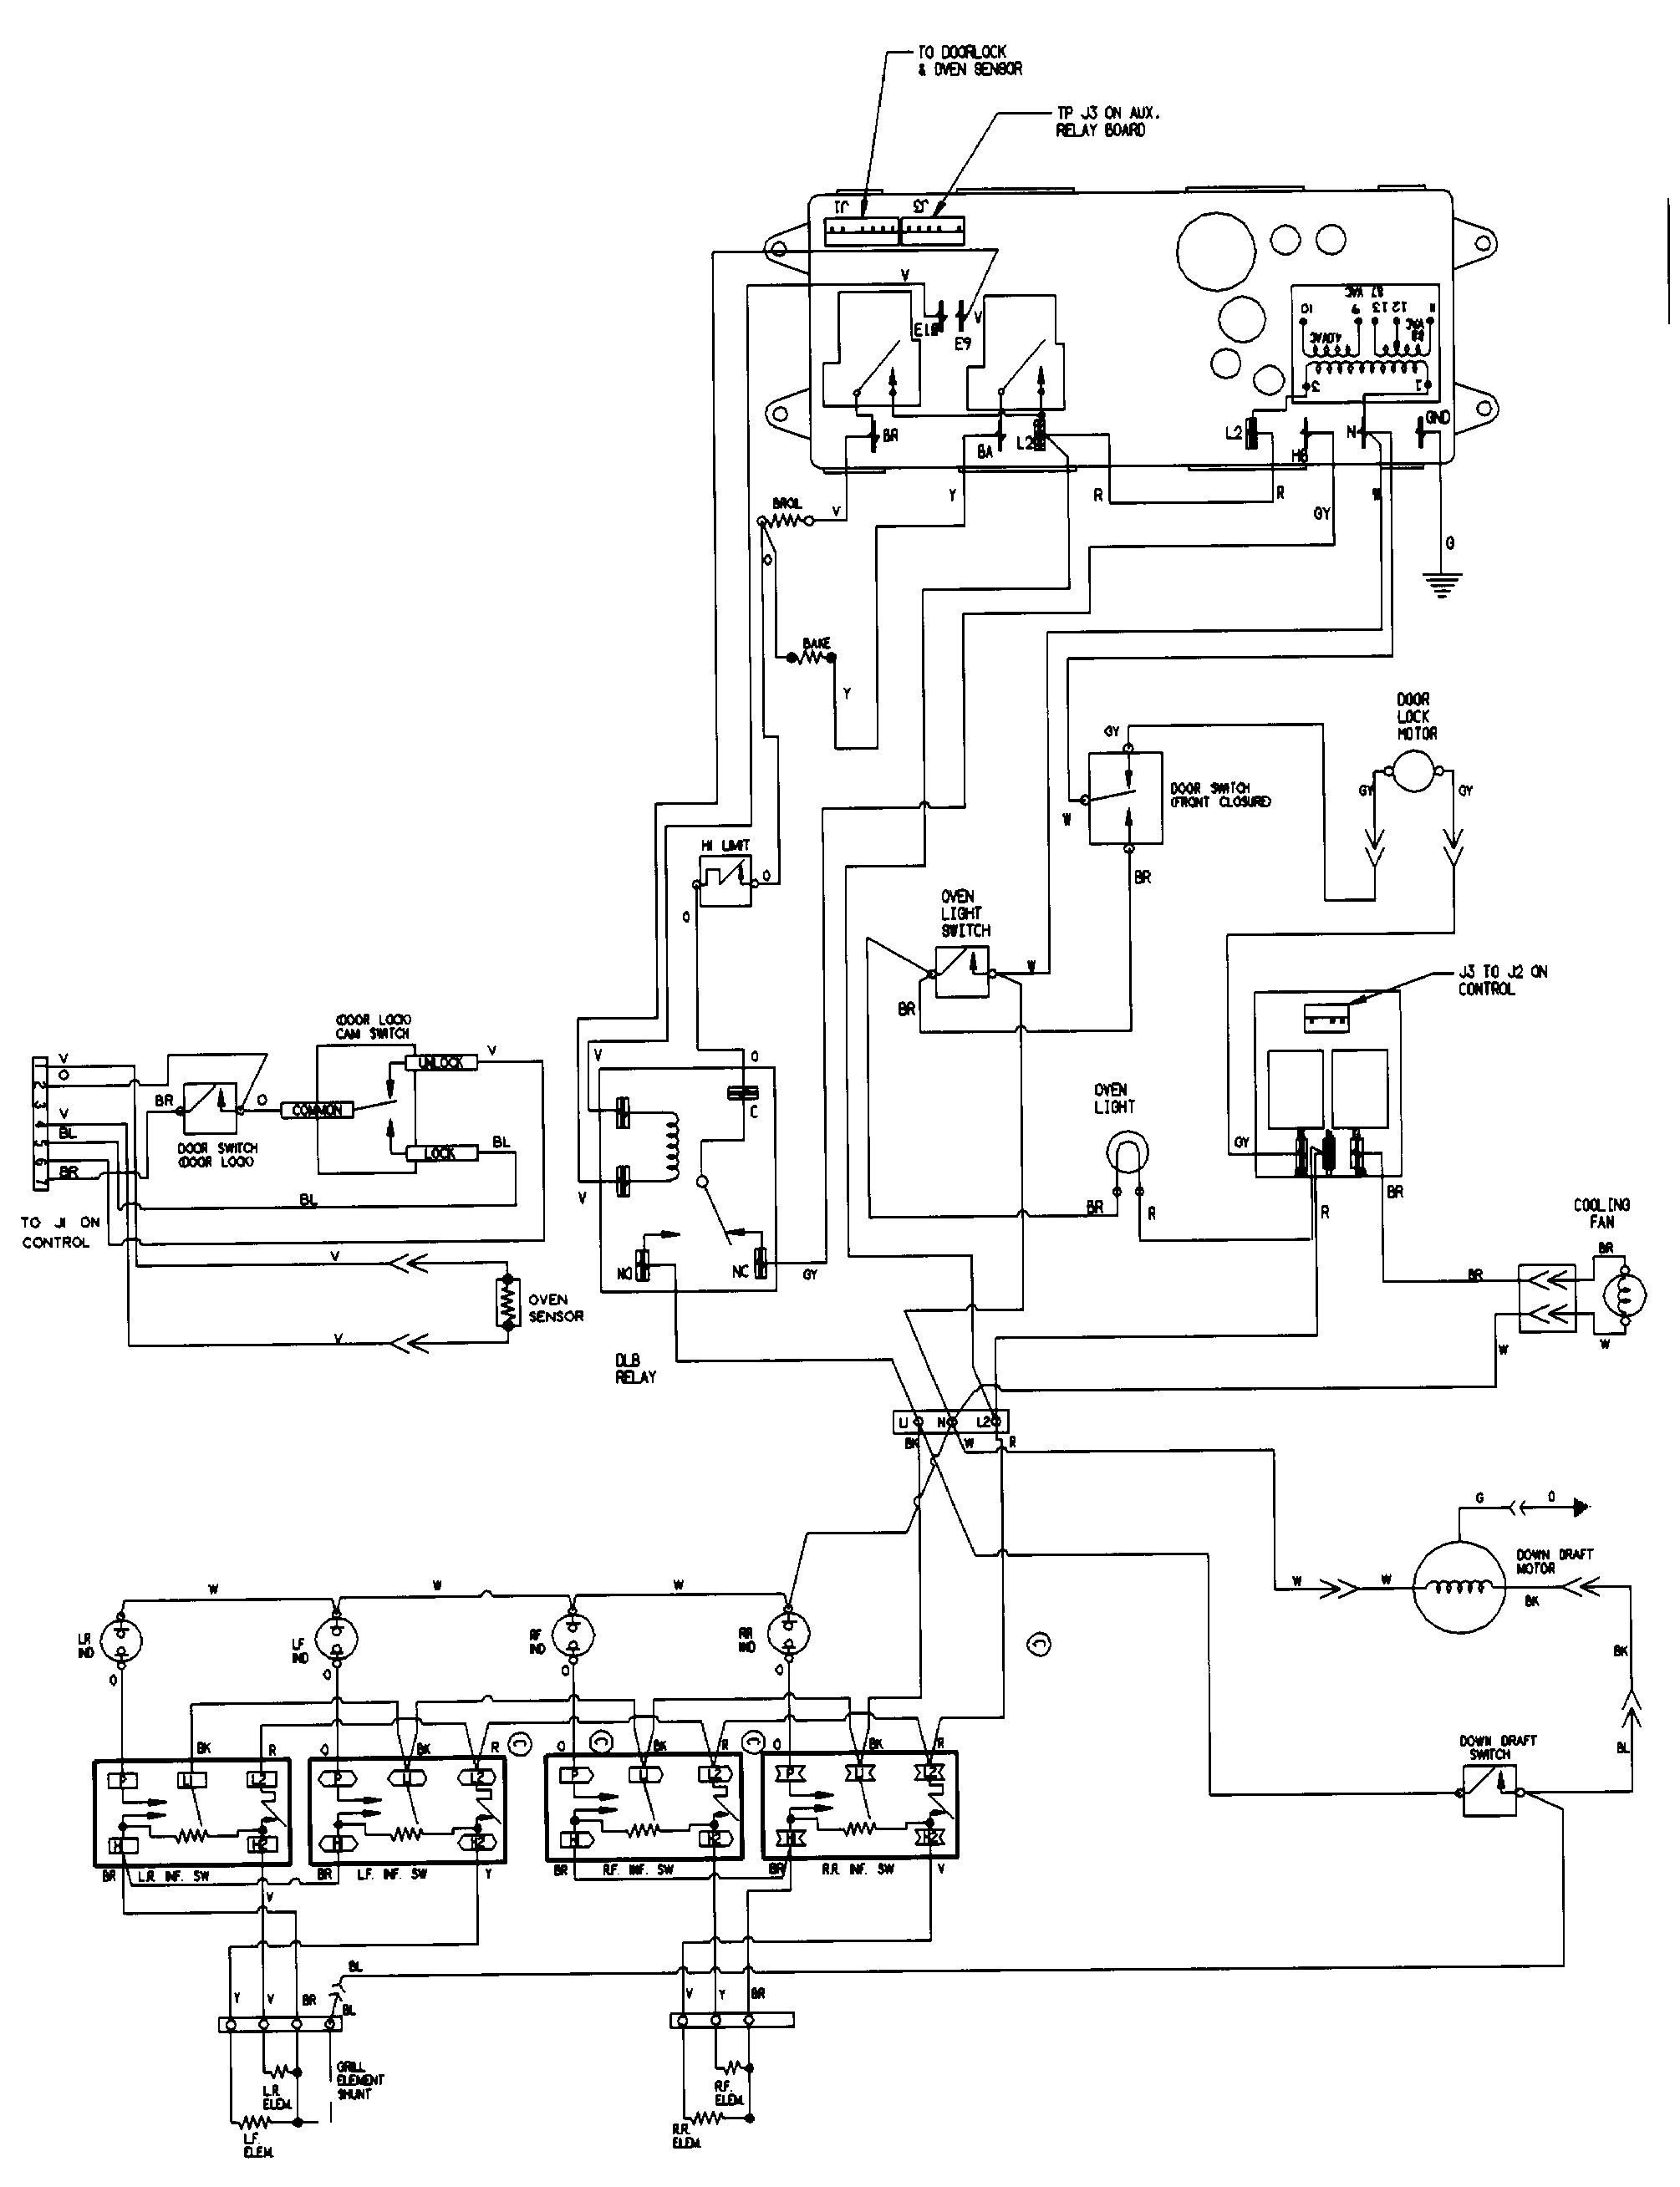 2002 pontiac bonneville engine diagram